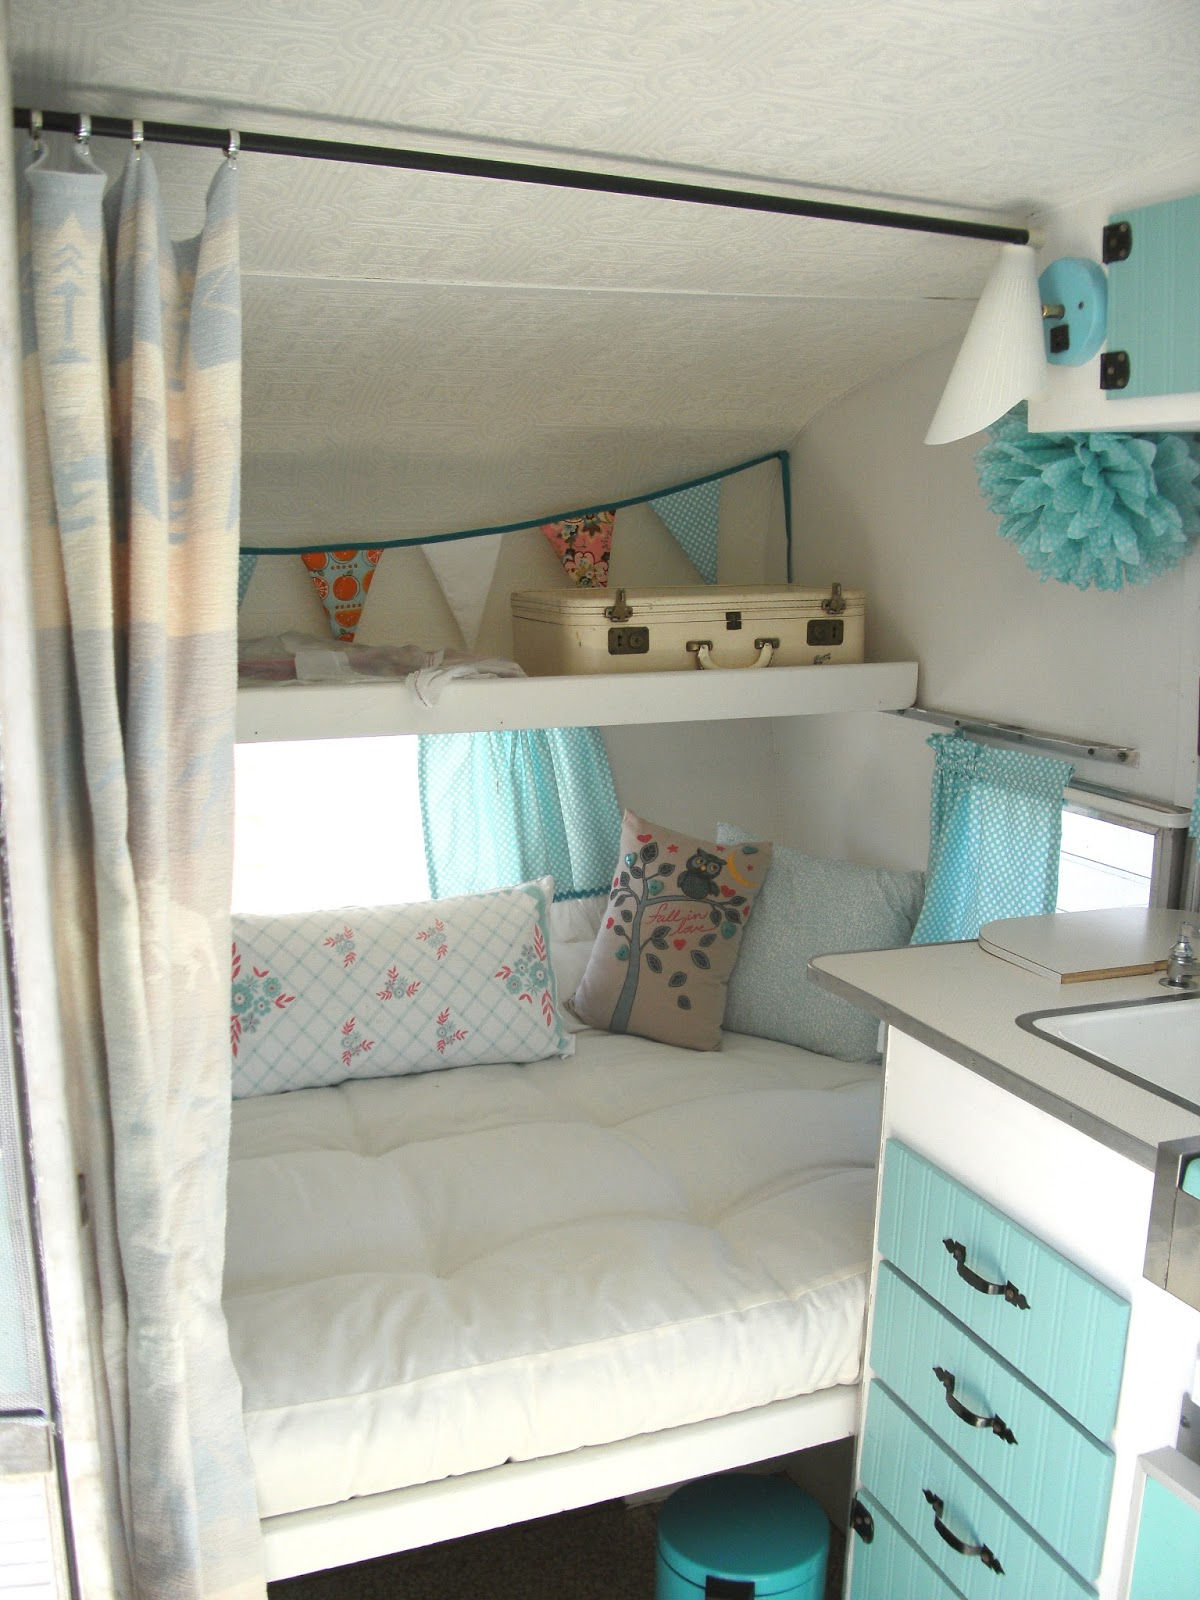 An Update On Maizy My Little Vintage Trailer Interior